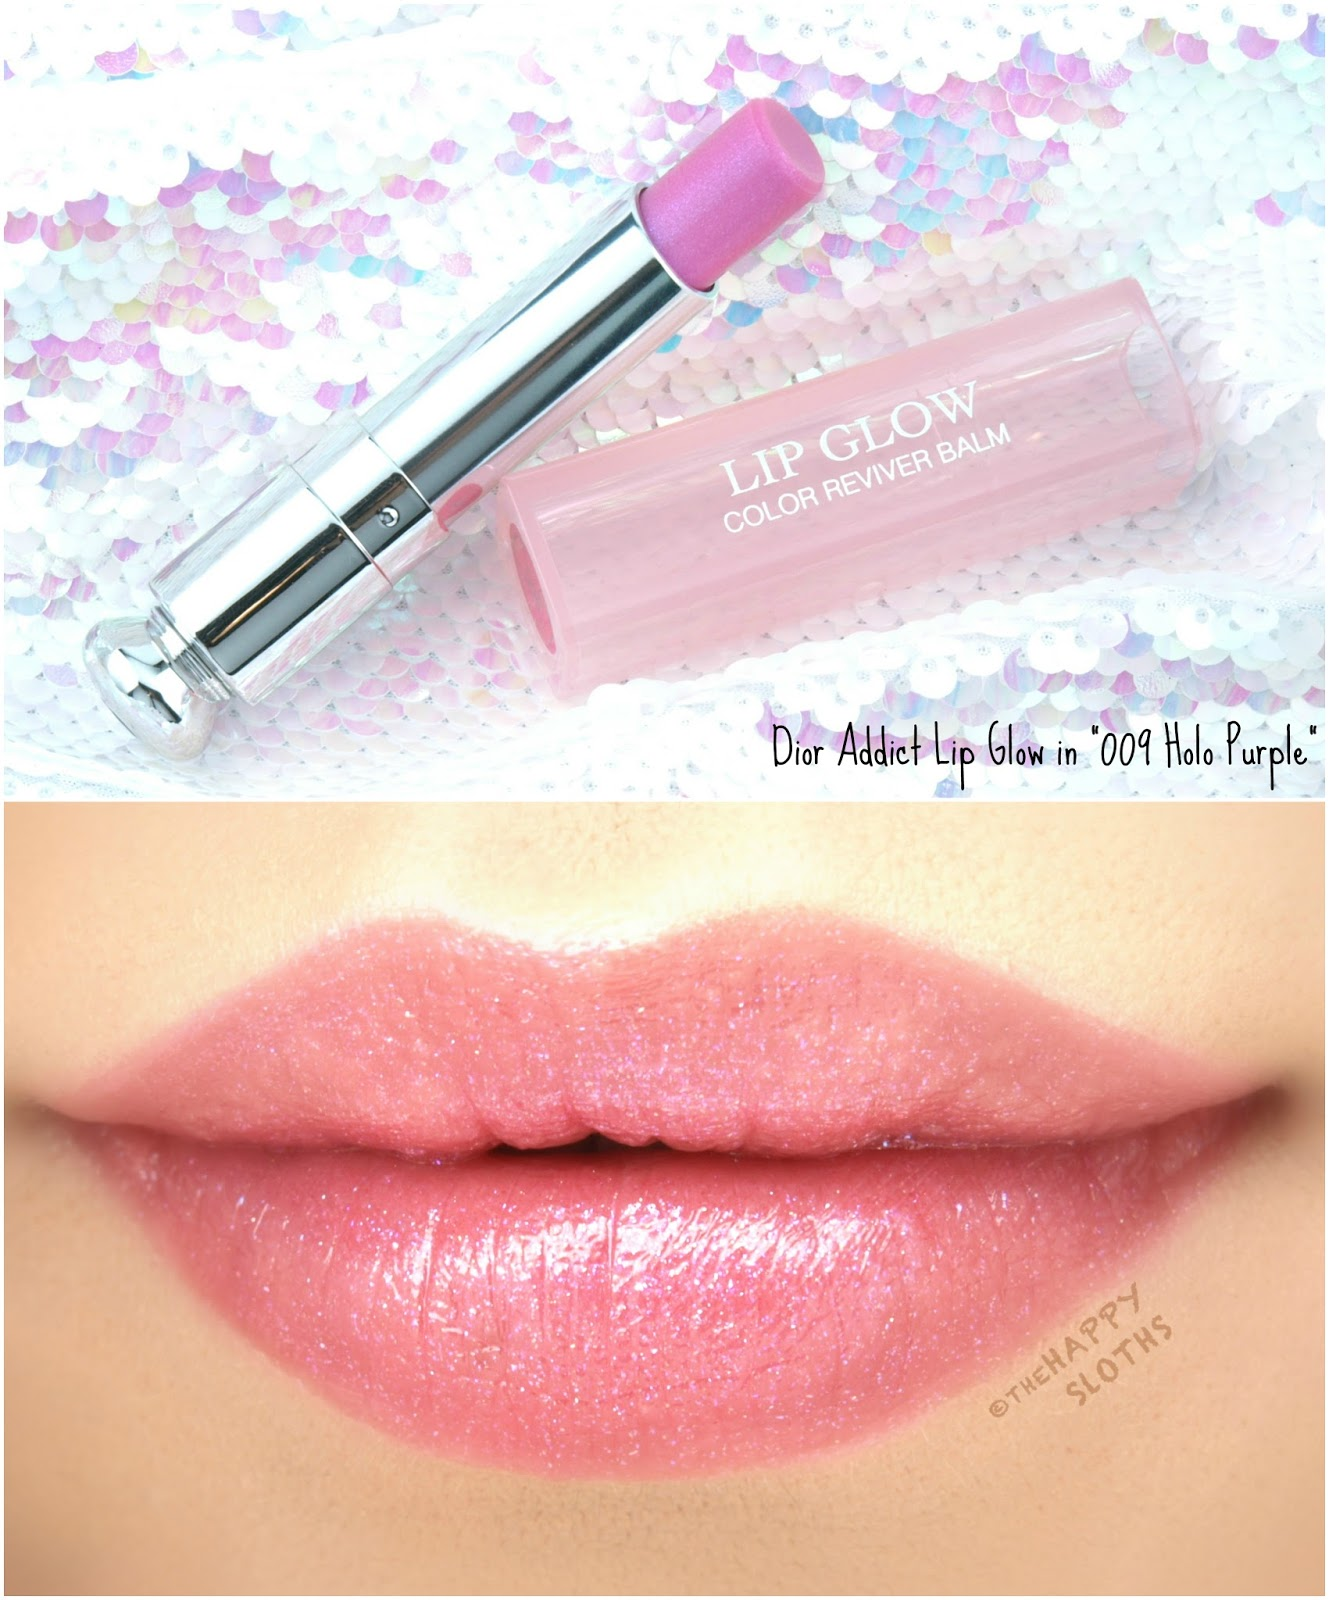 "Dior Addict Lip Glow Color Reviver Balm in ""009 Holo Purple"": Review and Swatches"